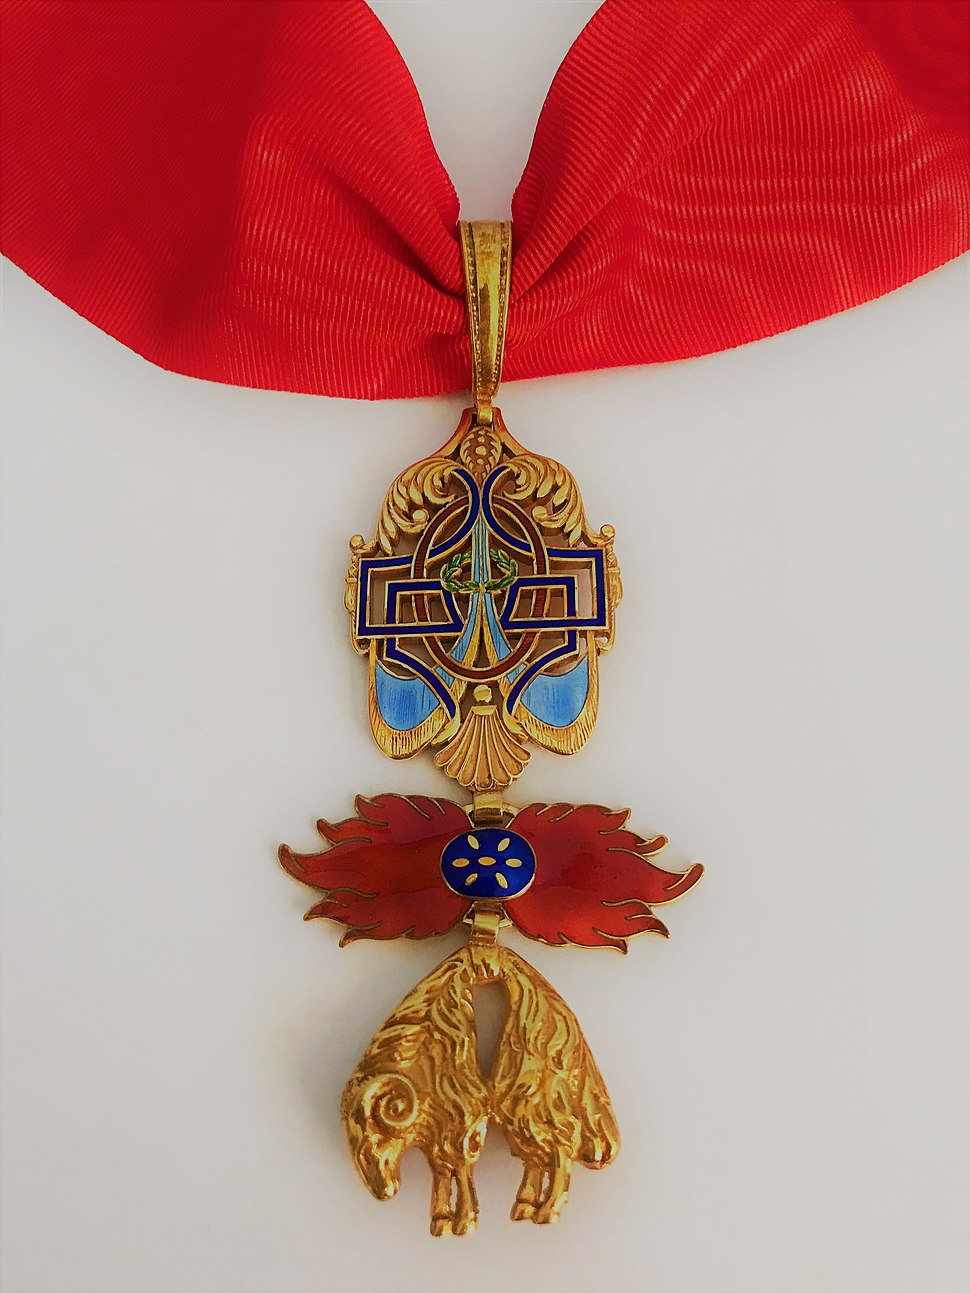 Insignia of the Order of the Golden Fleece (Spain)